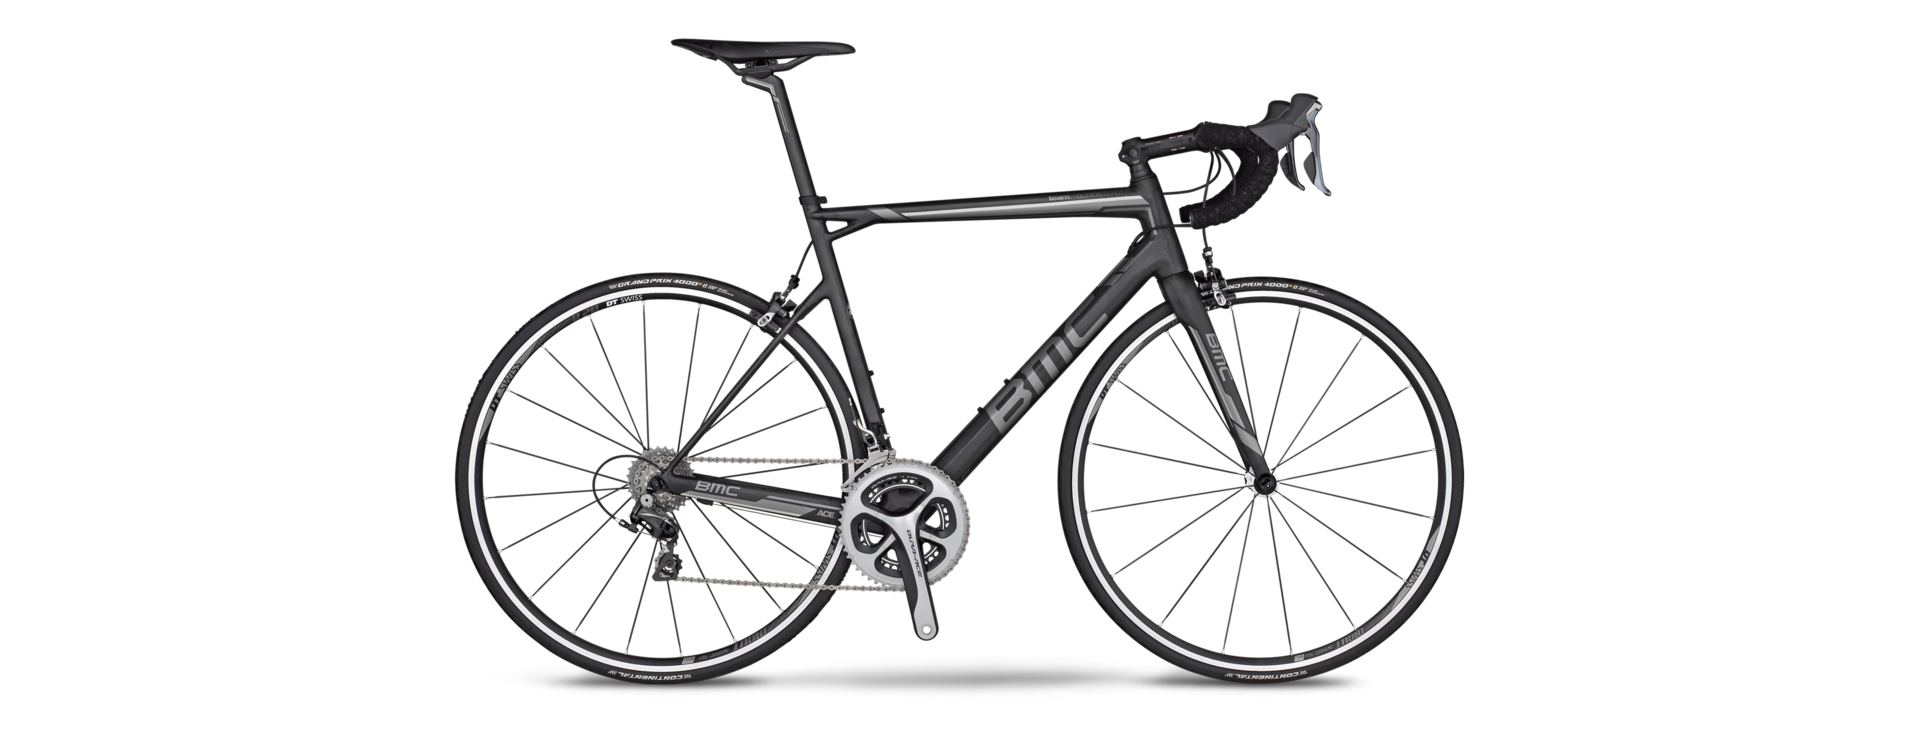 BMC Teammachine SLR01 Dura Ace Shark